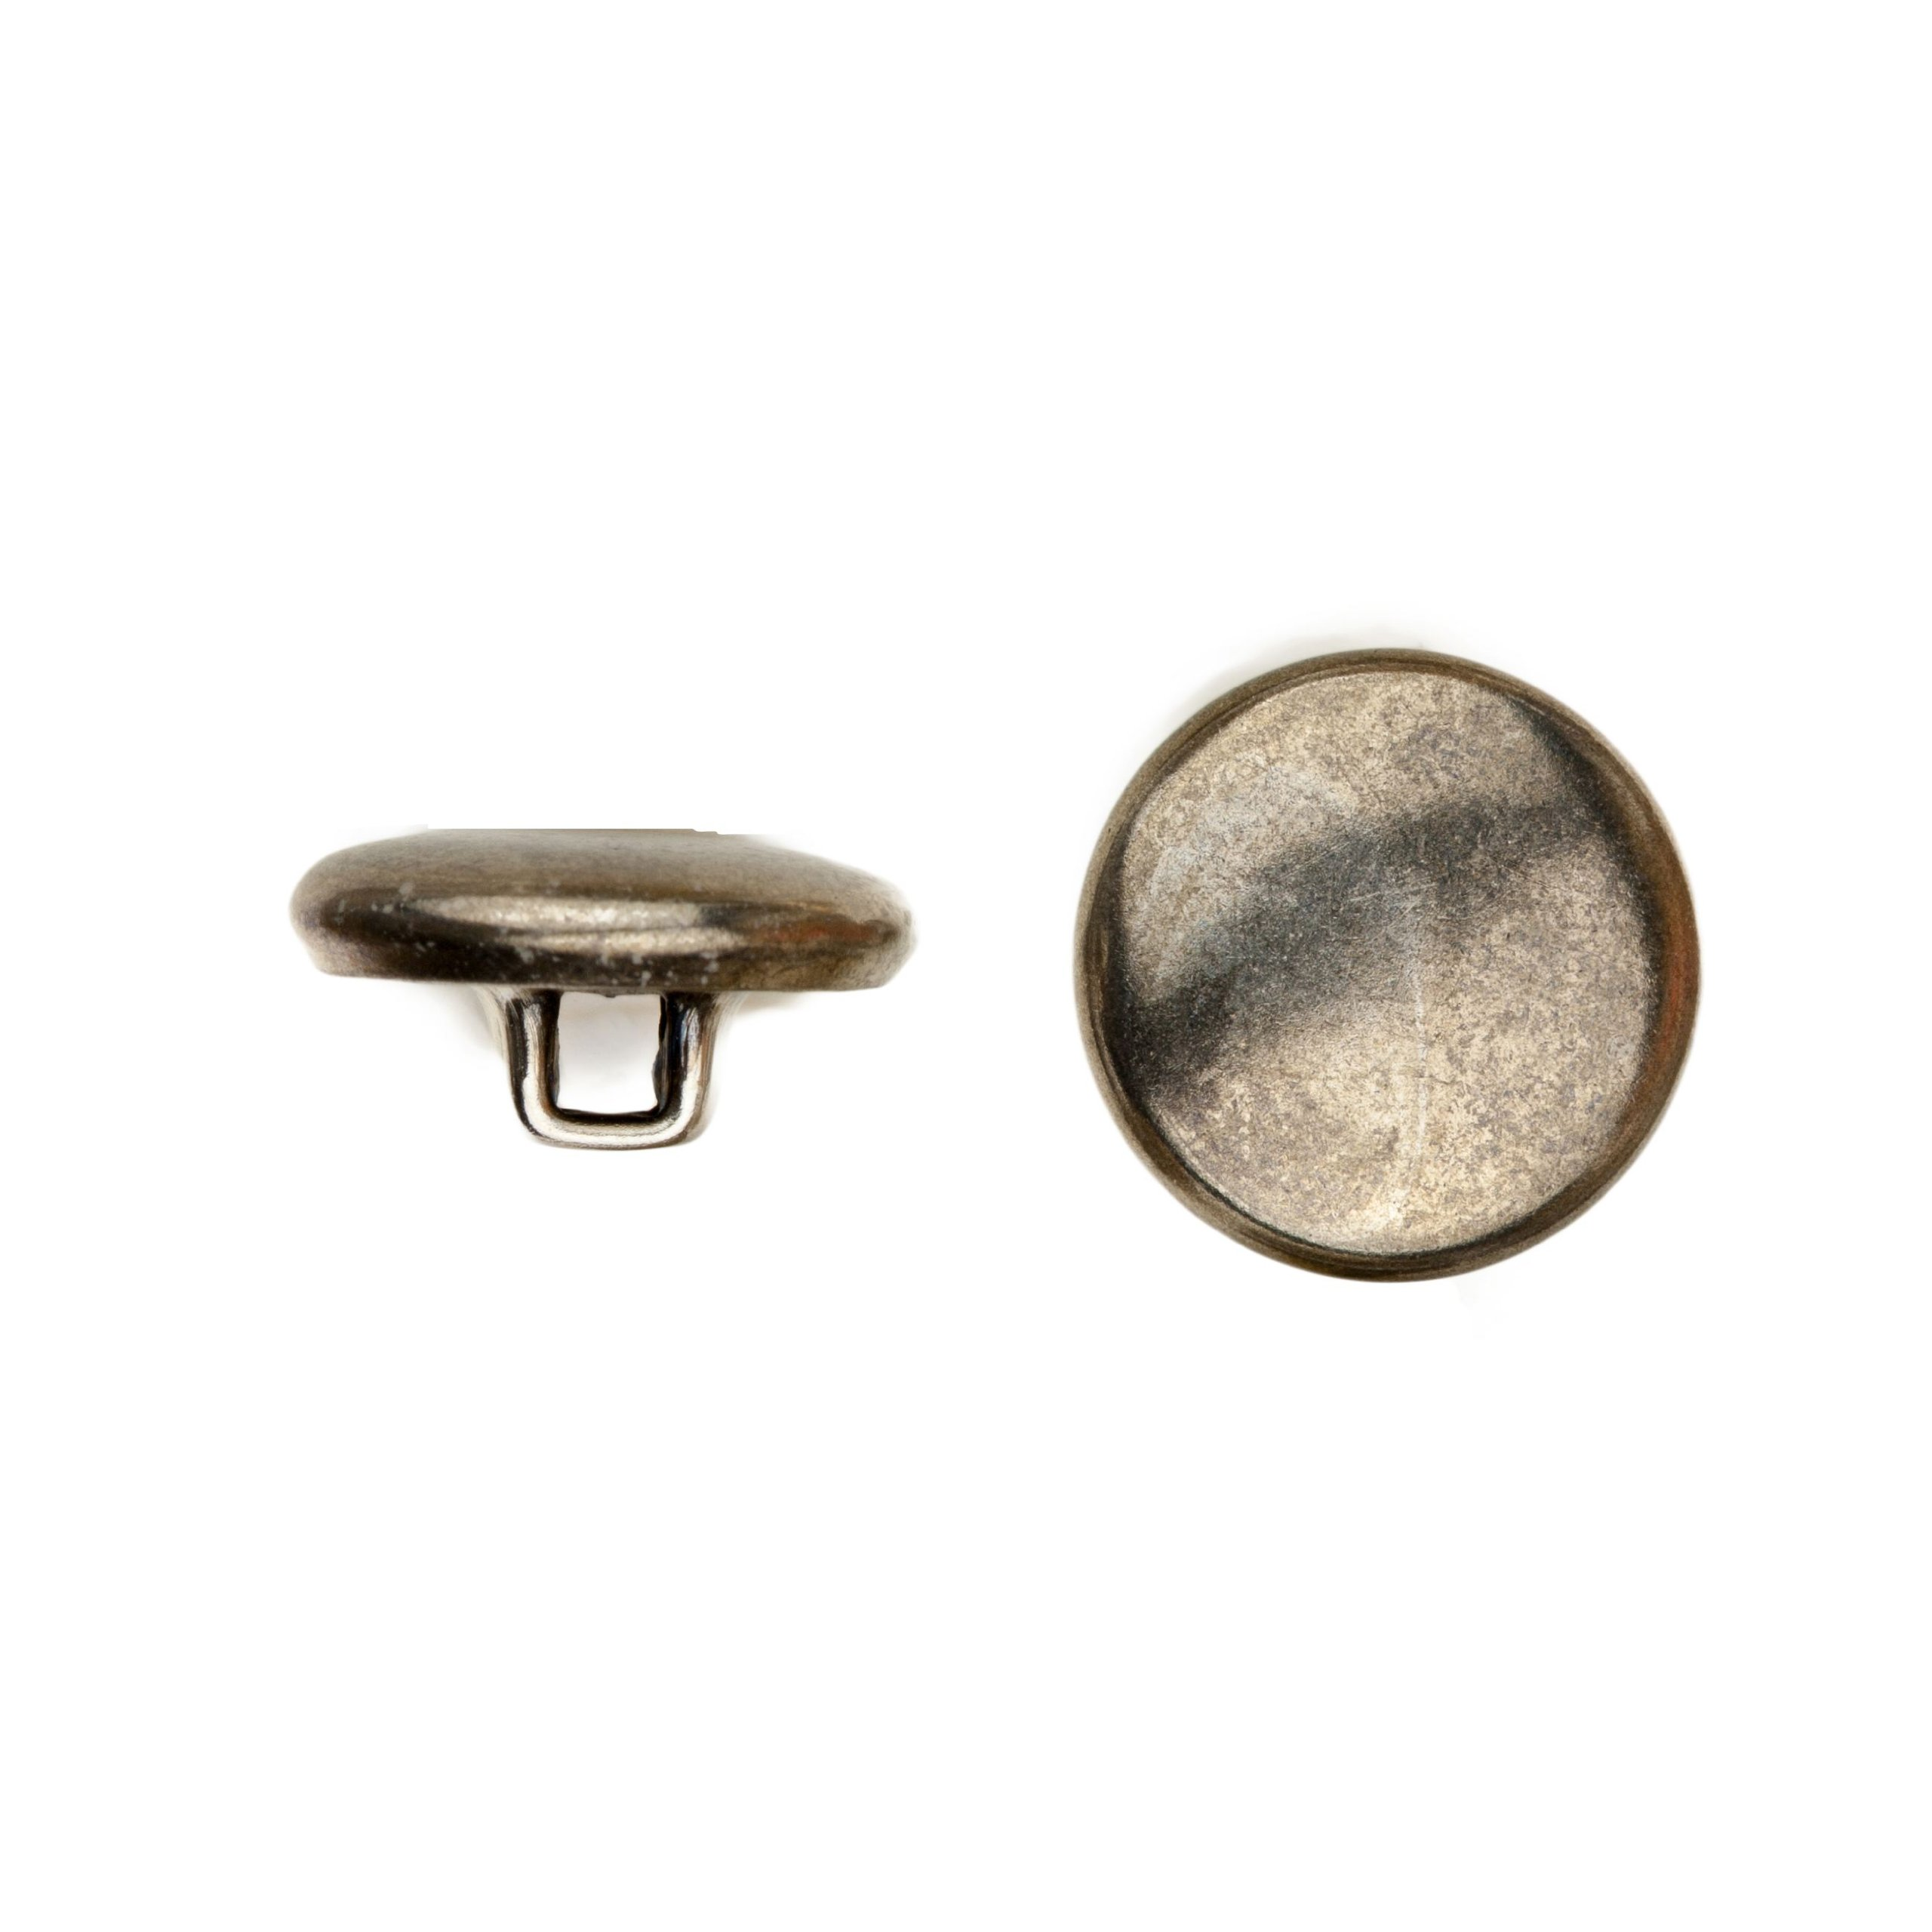 C&C Metal Products Corp 5002 Quarter Dome Metal Button, Size 24, Colonial Nickel Finish, 45-Piece